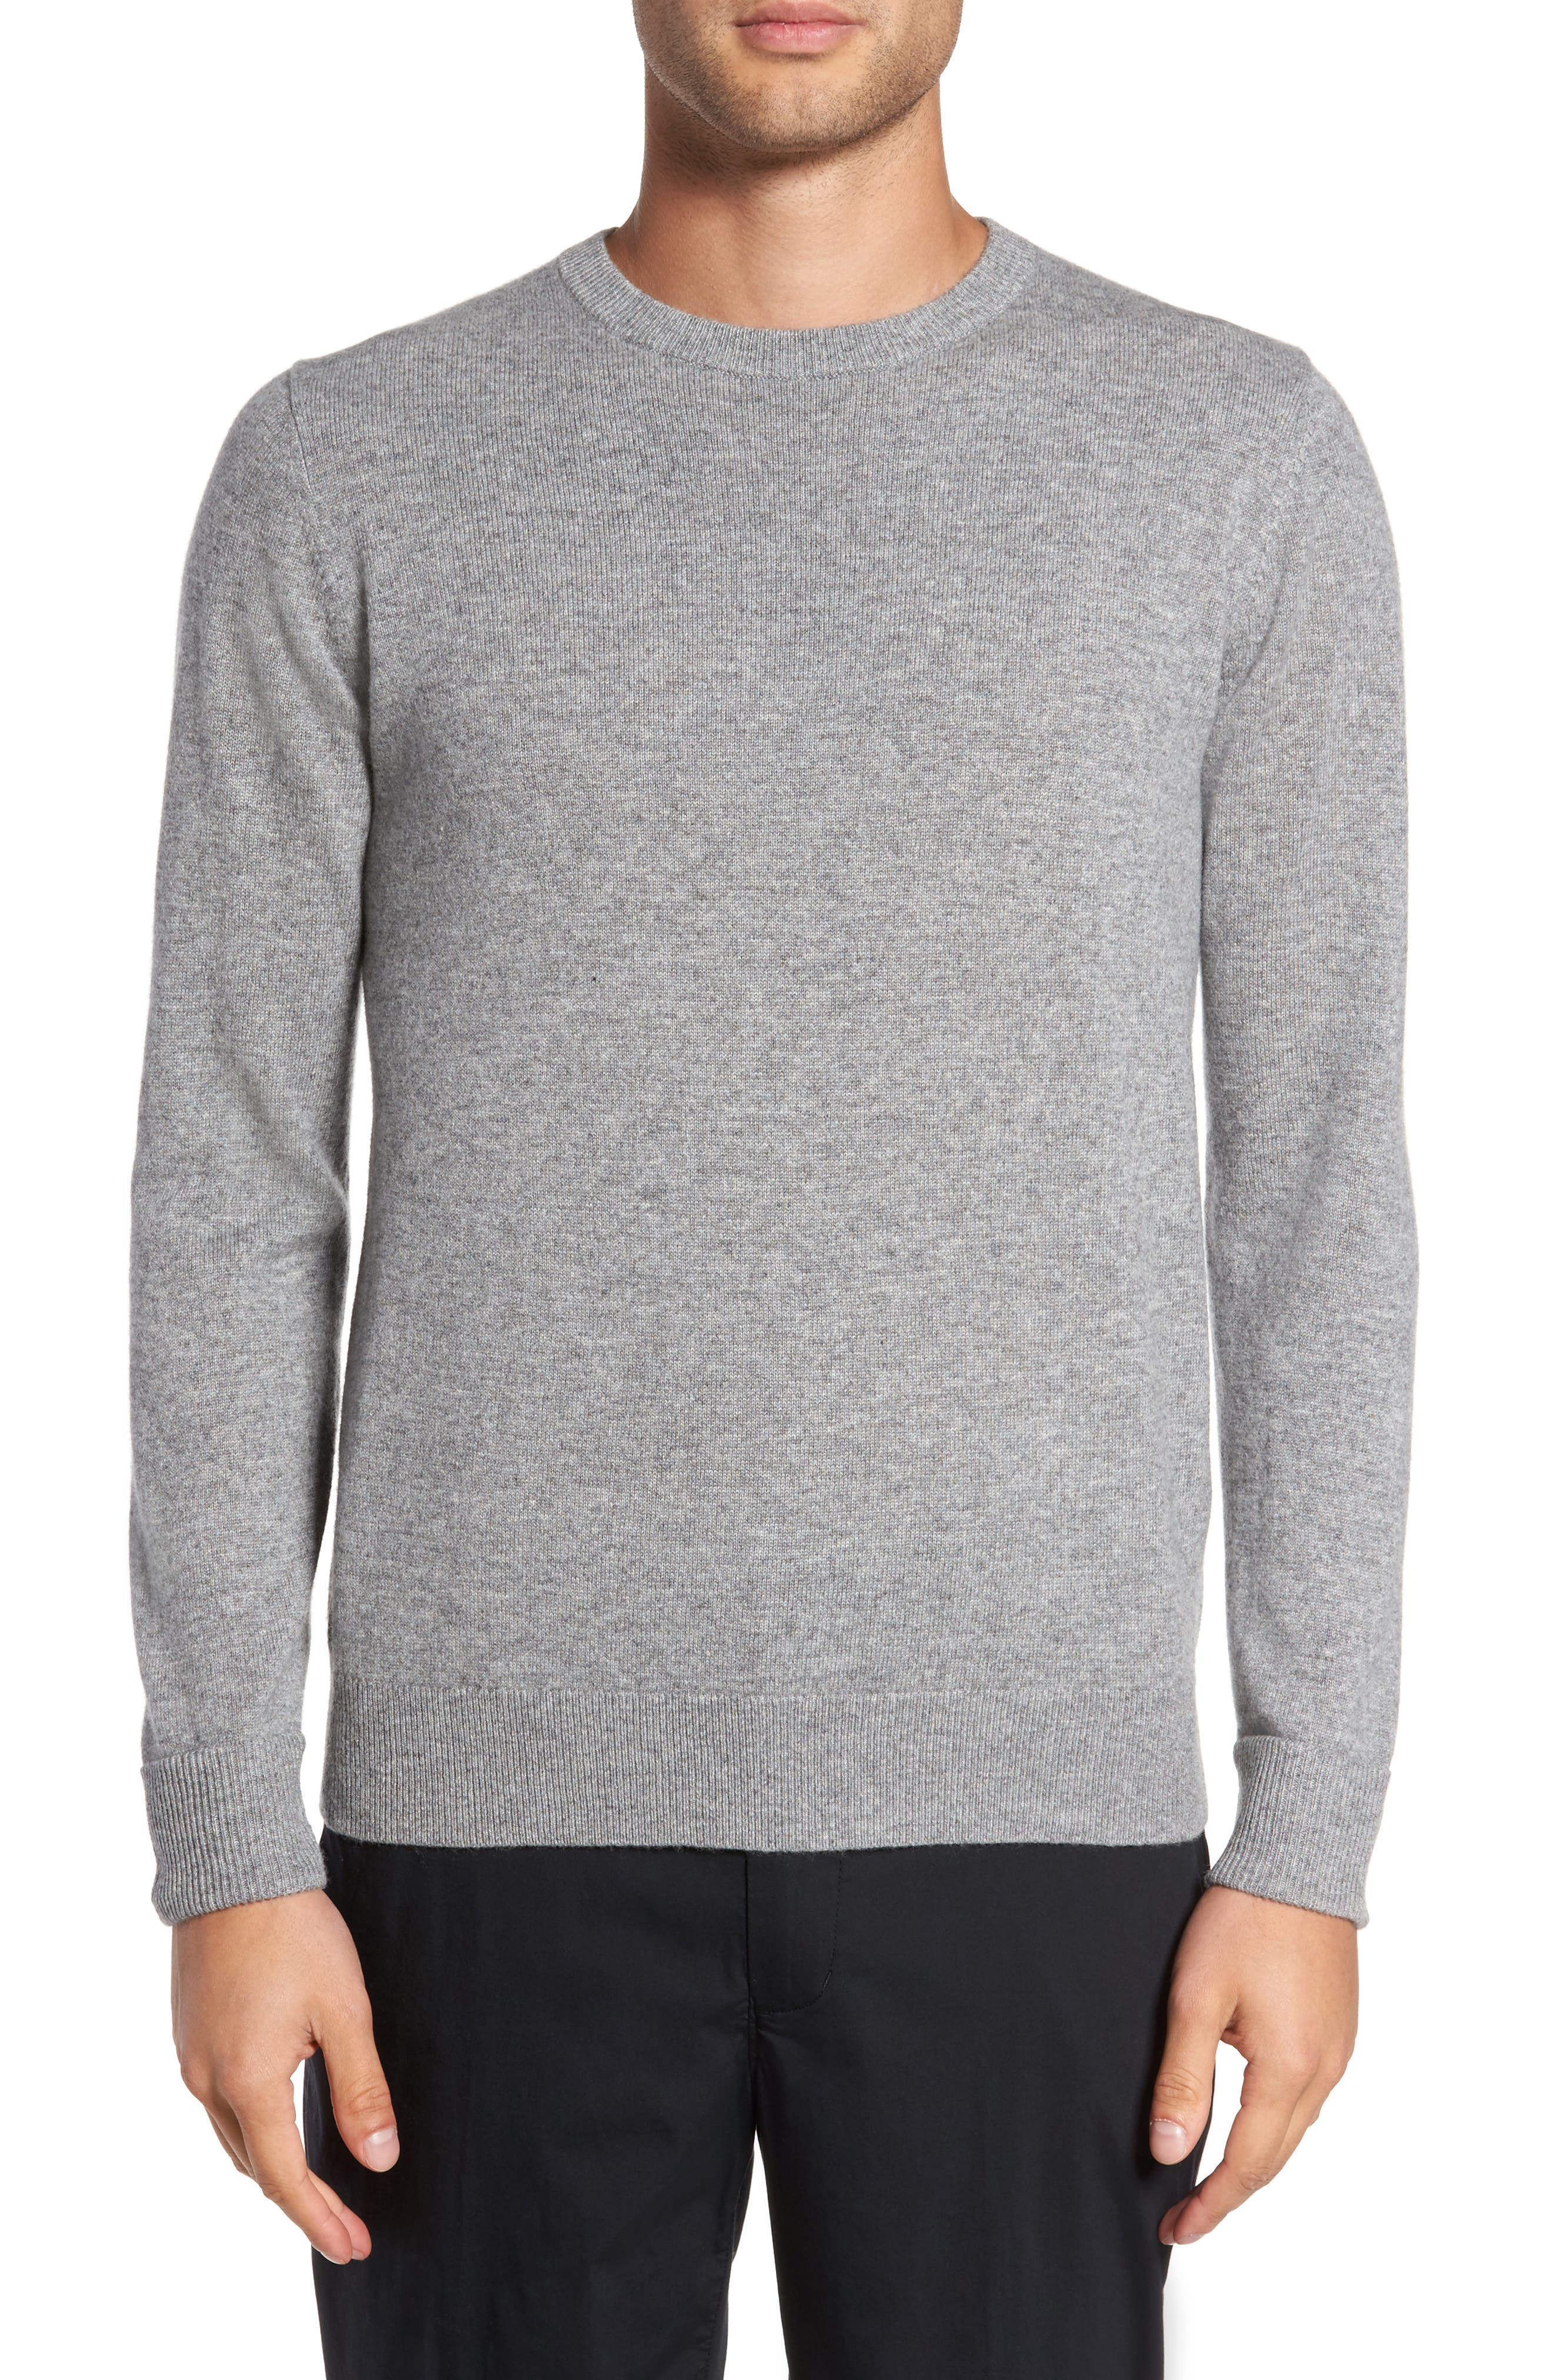 Alternate Image 1 Selected - Everlane The Cashmere Crew Sweater